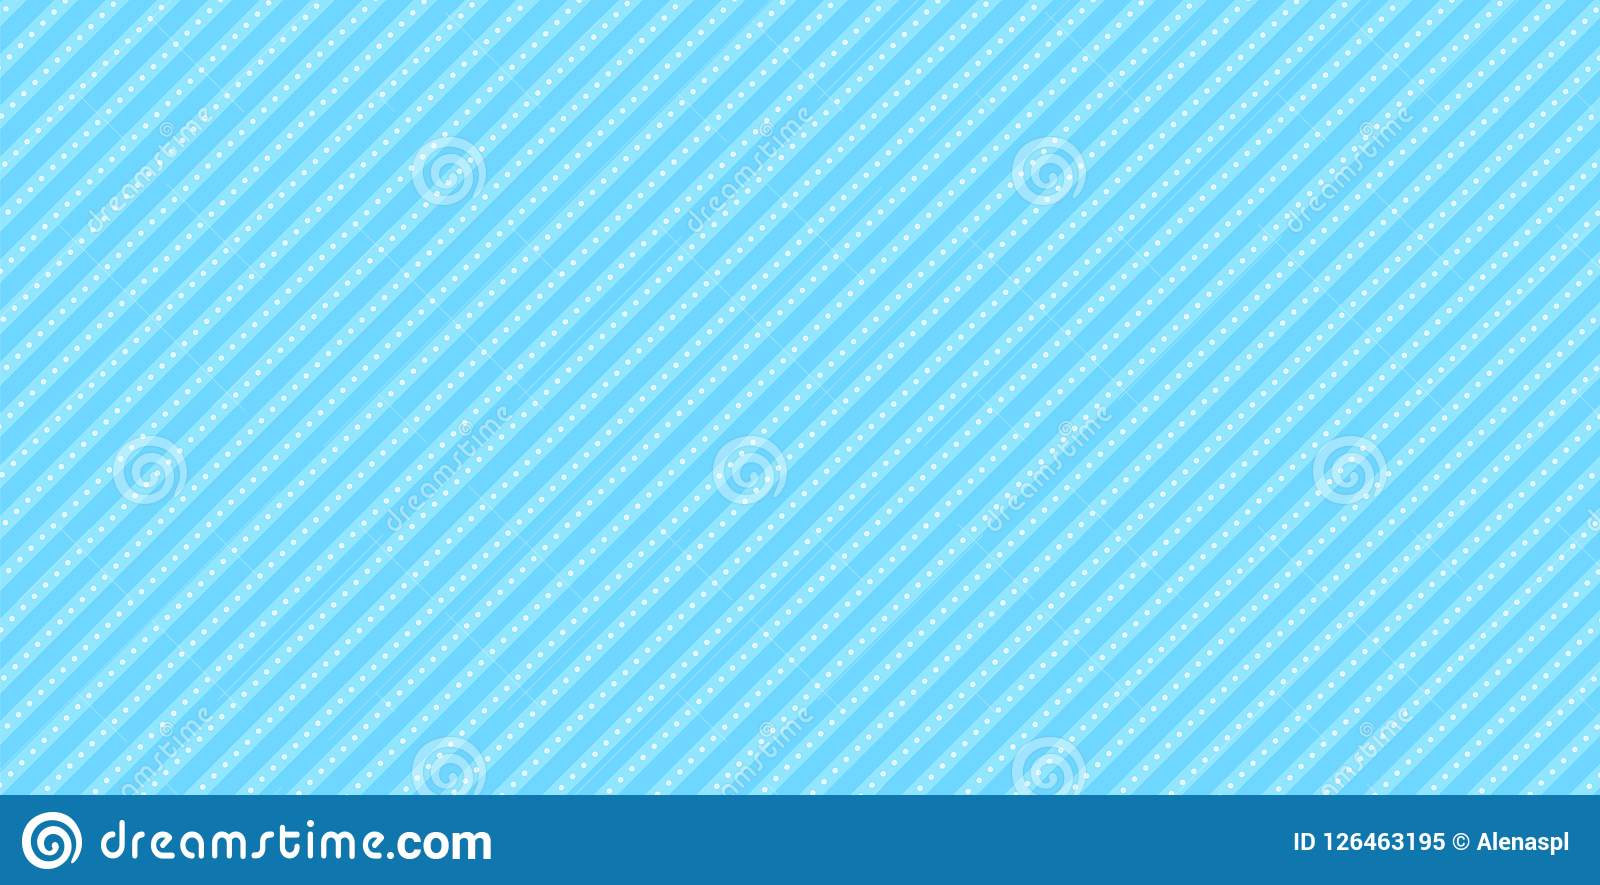 lol doll vector background with stripes and polka dots cute light